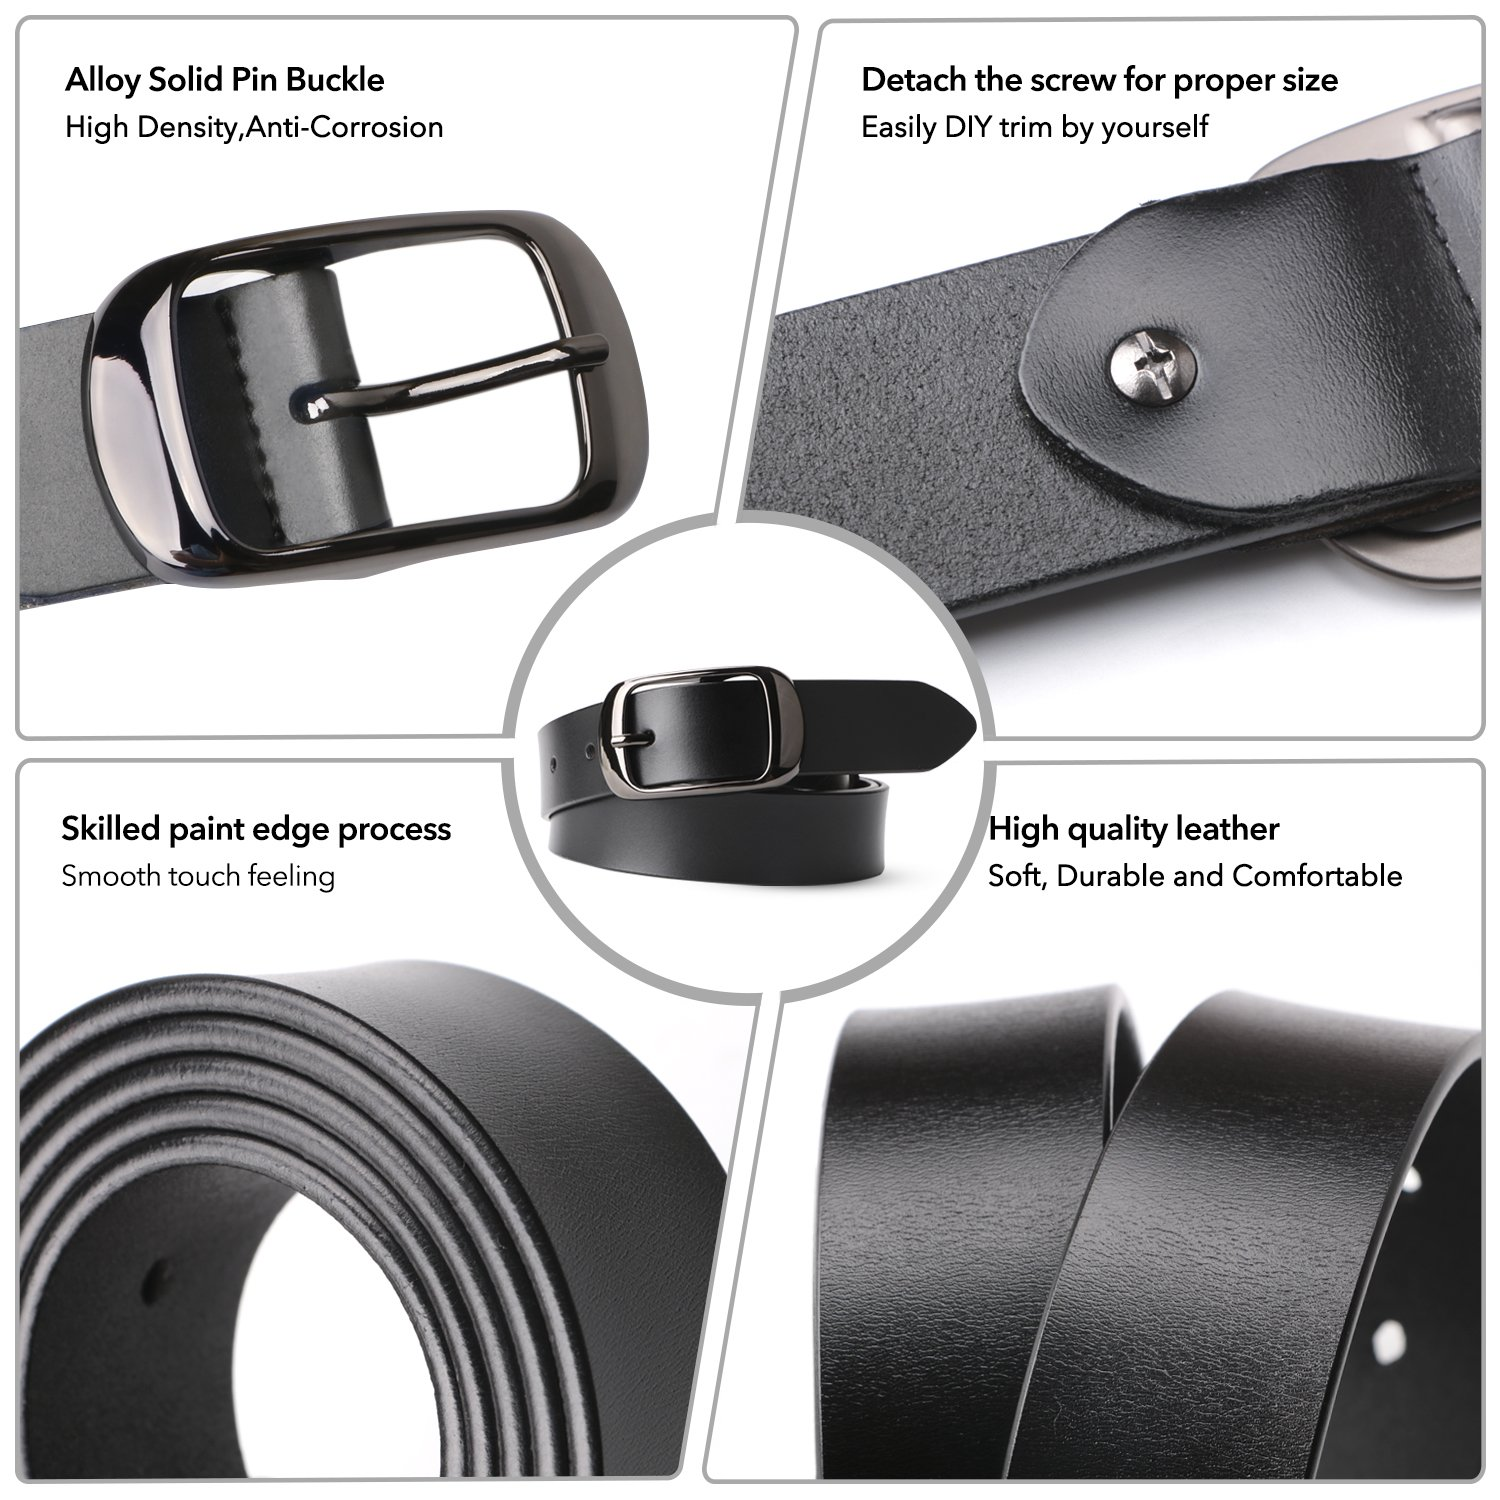 Women Leather Belt Ladies Black Waist Belt for Jeans Pants Dresses Small Size Elegant Gift Box by JASGOOD (Image #2)